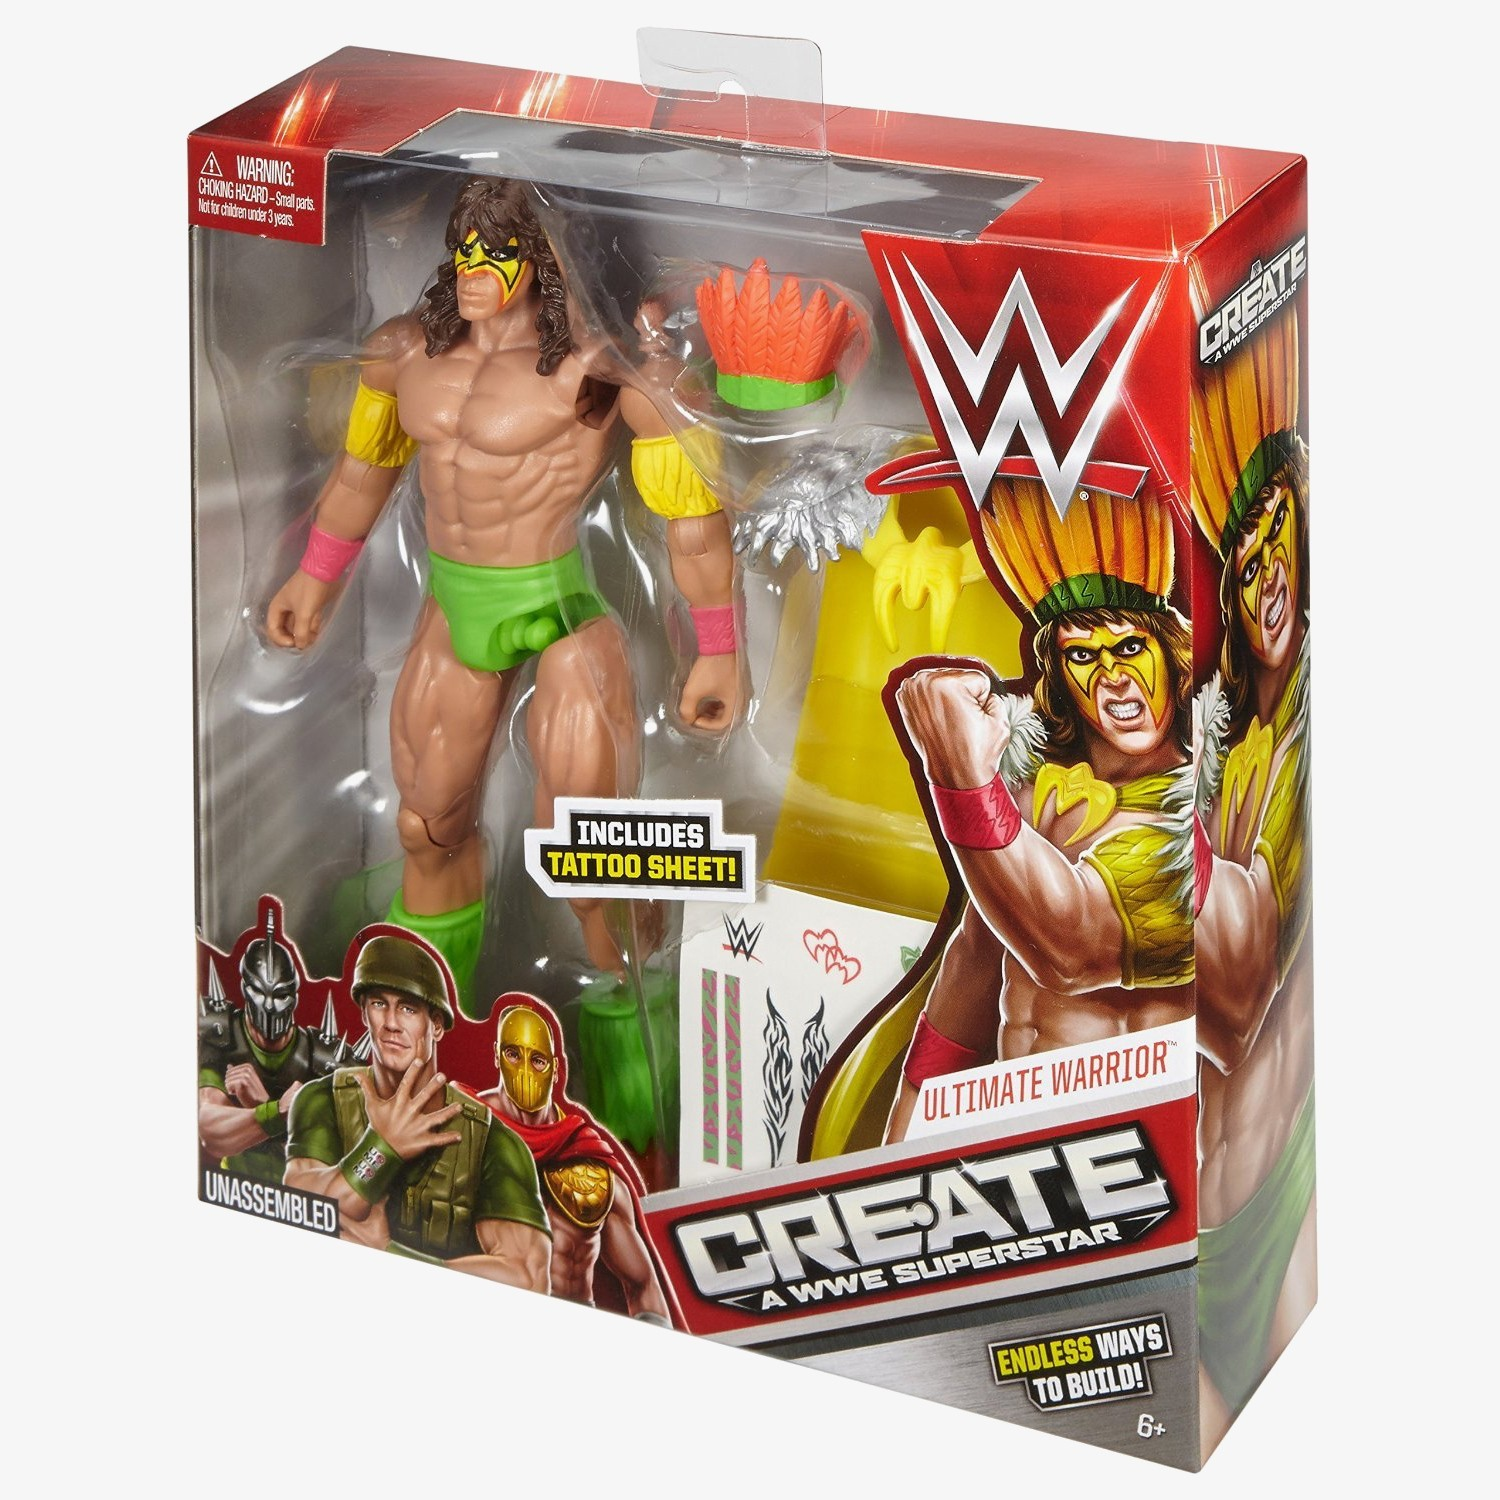 Drapes For Kids Wwe Bedding And Curtains Wwe Bedroom Accessories